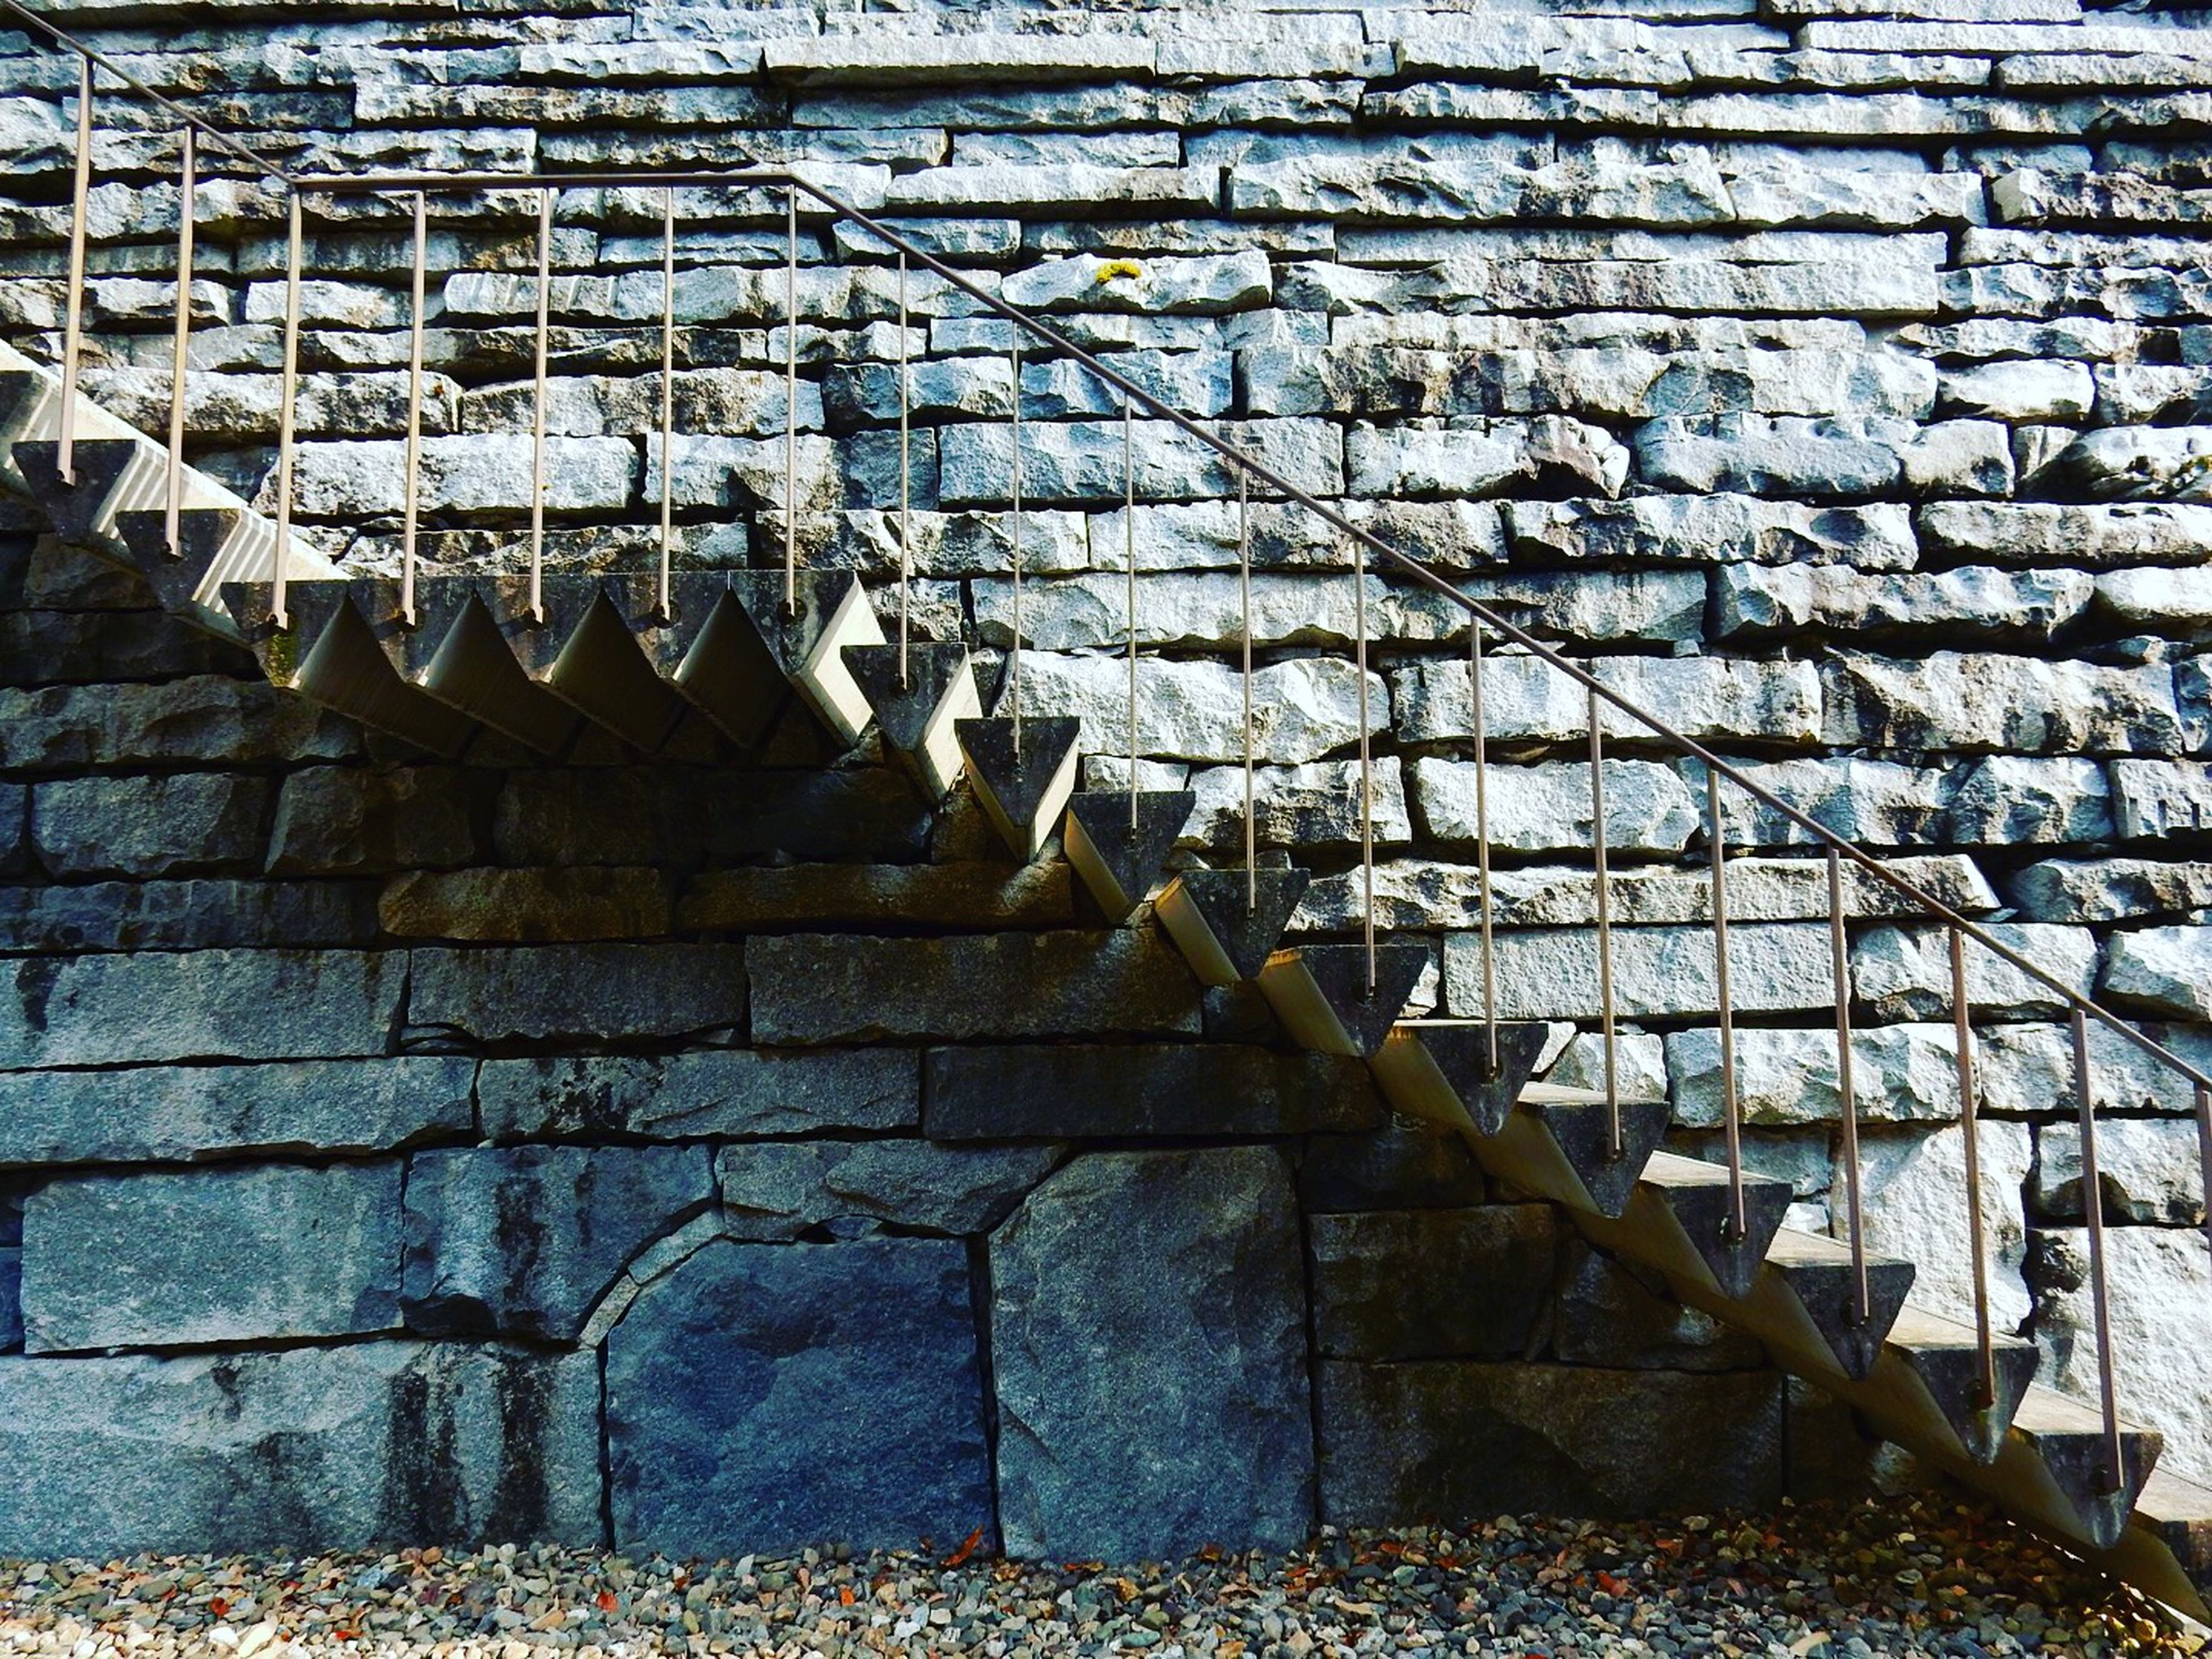 architecture, built structure, building exterior, brick wall, wall - building feature, old, stone wall, history, building, day, low angle view, pattern, outdoors, no people, steps, damaged, wall, weathered, metal, sunlight